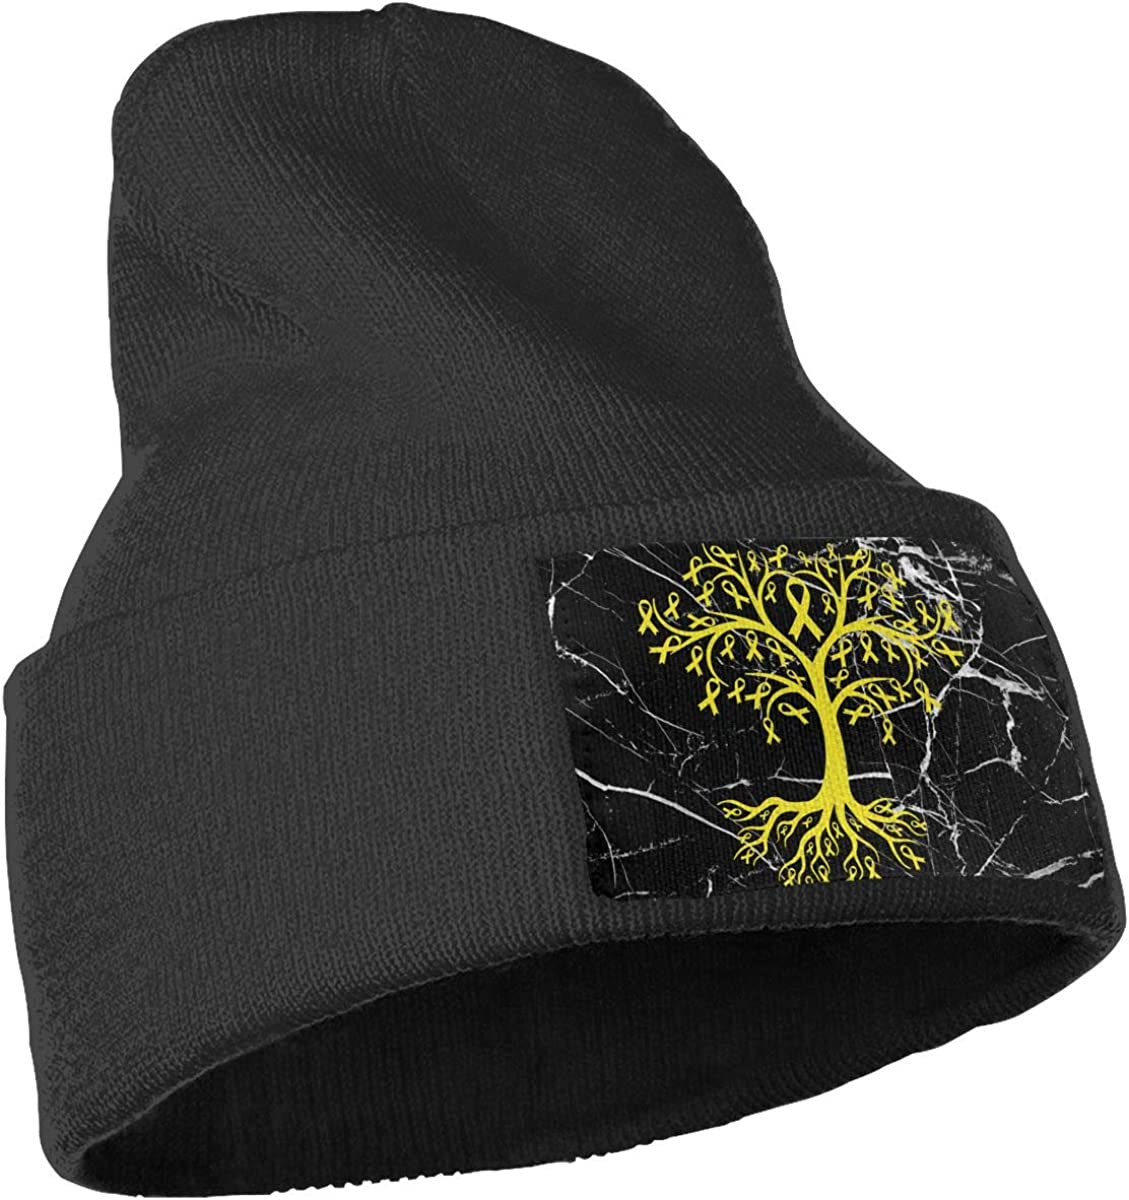 Stretchy /& Soft Winter Ski Skull Caps Bladder Cancer Awareness Tree Roots Men /& Women Solid Color Knit Beanie Hat